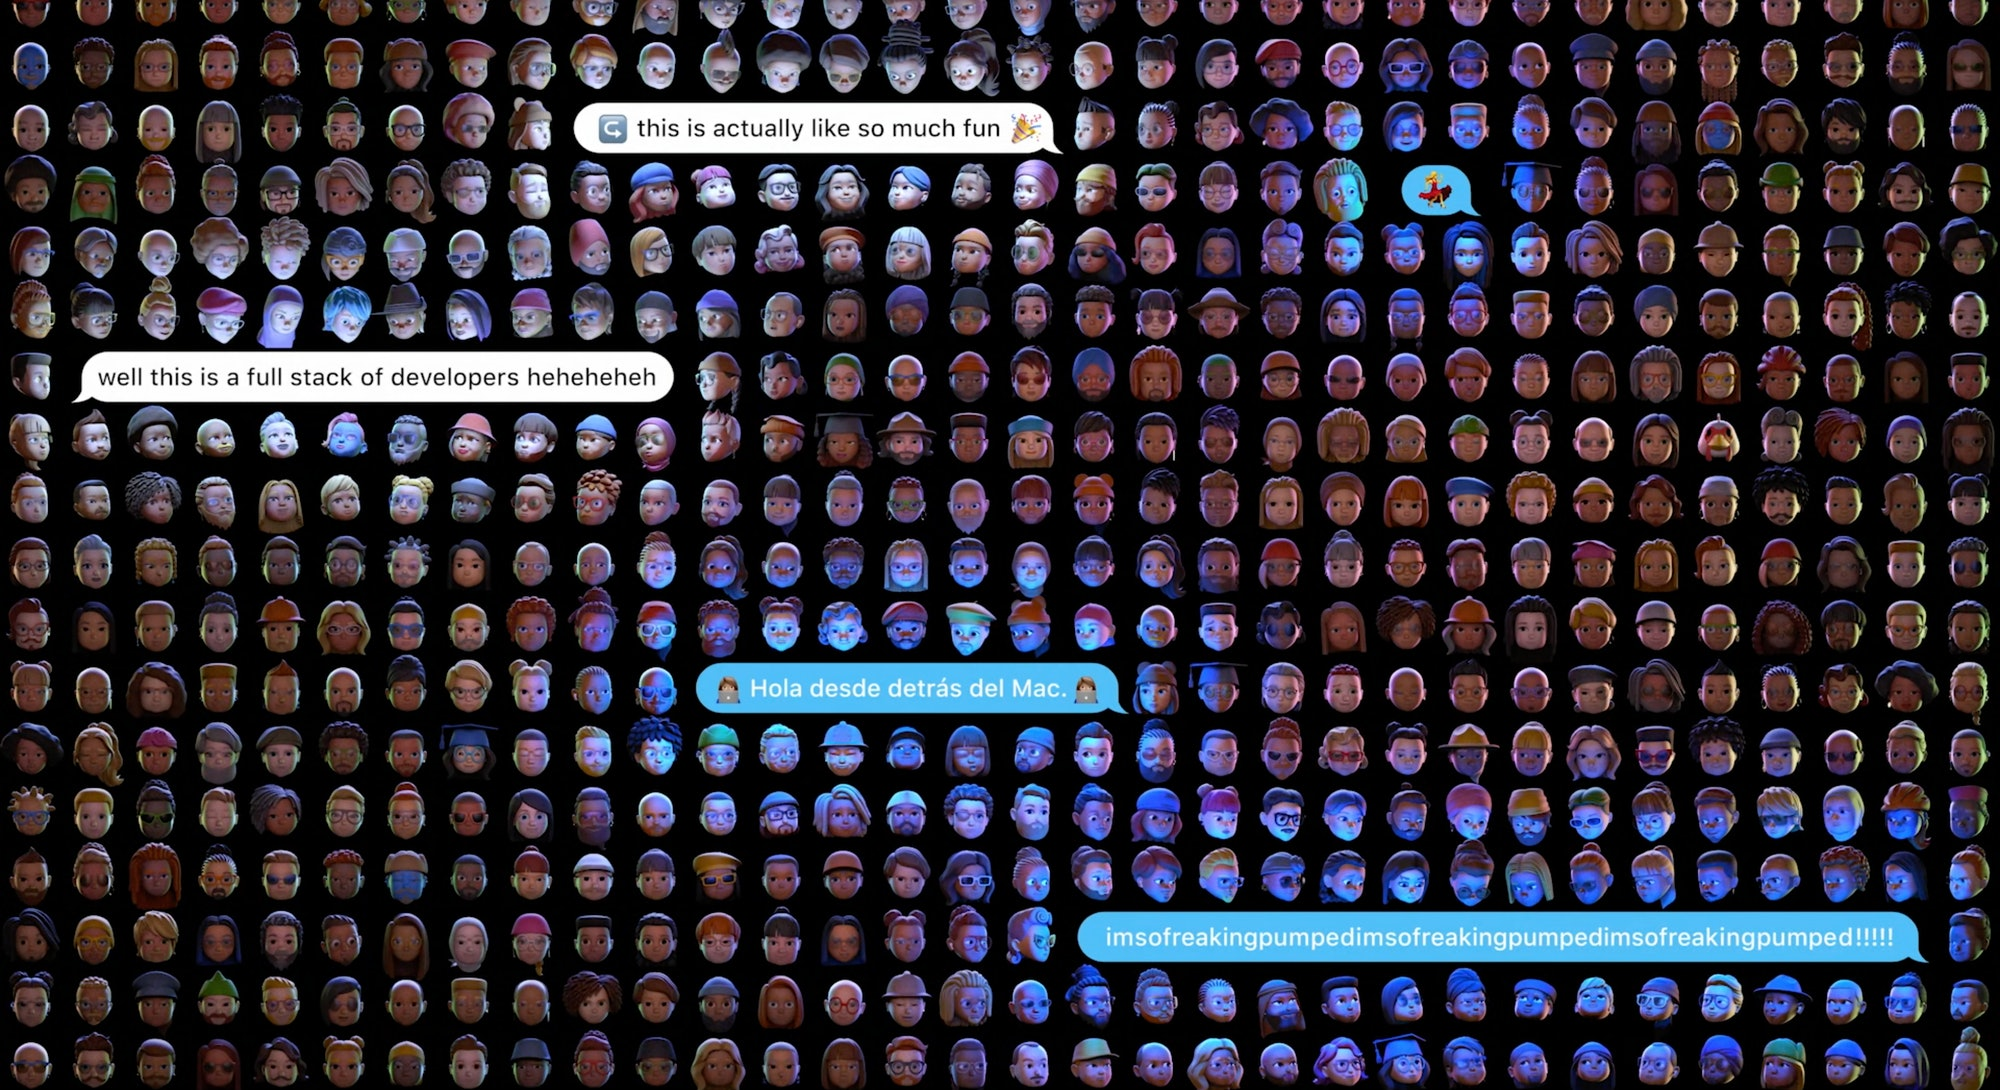 Picture of memojis at WWDC. Apple. iOS. iOS 15. Developers. Apps. App store. iMessage.